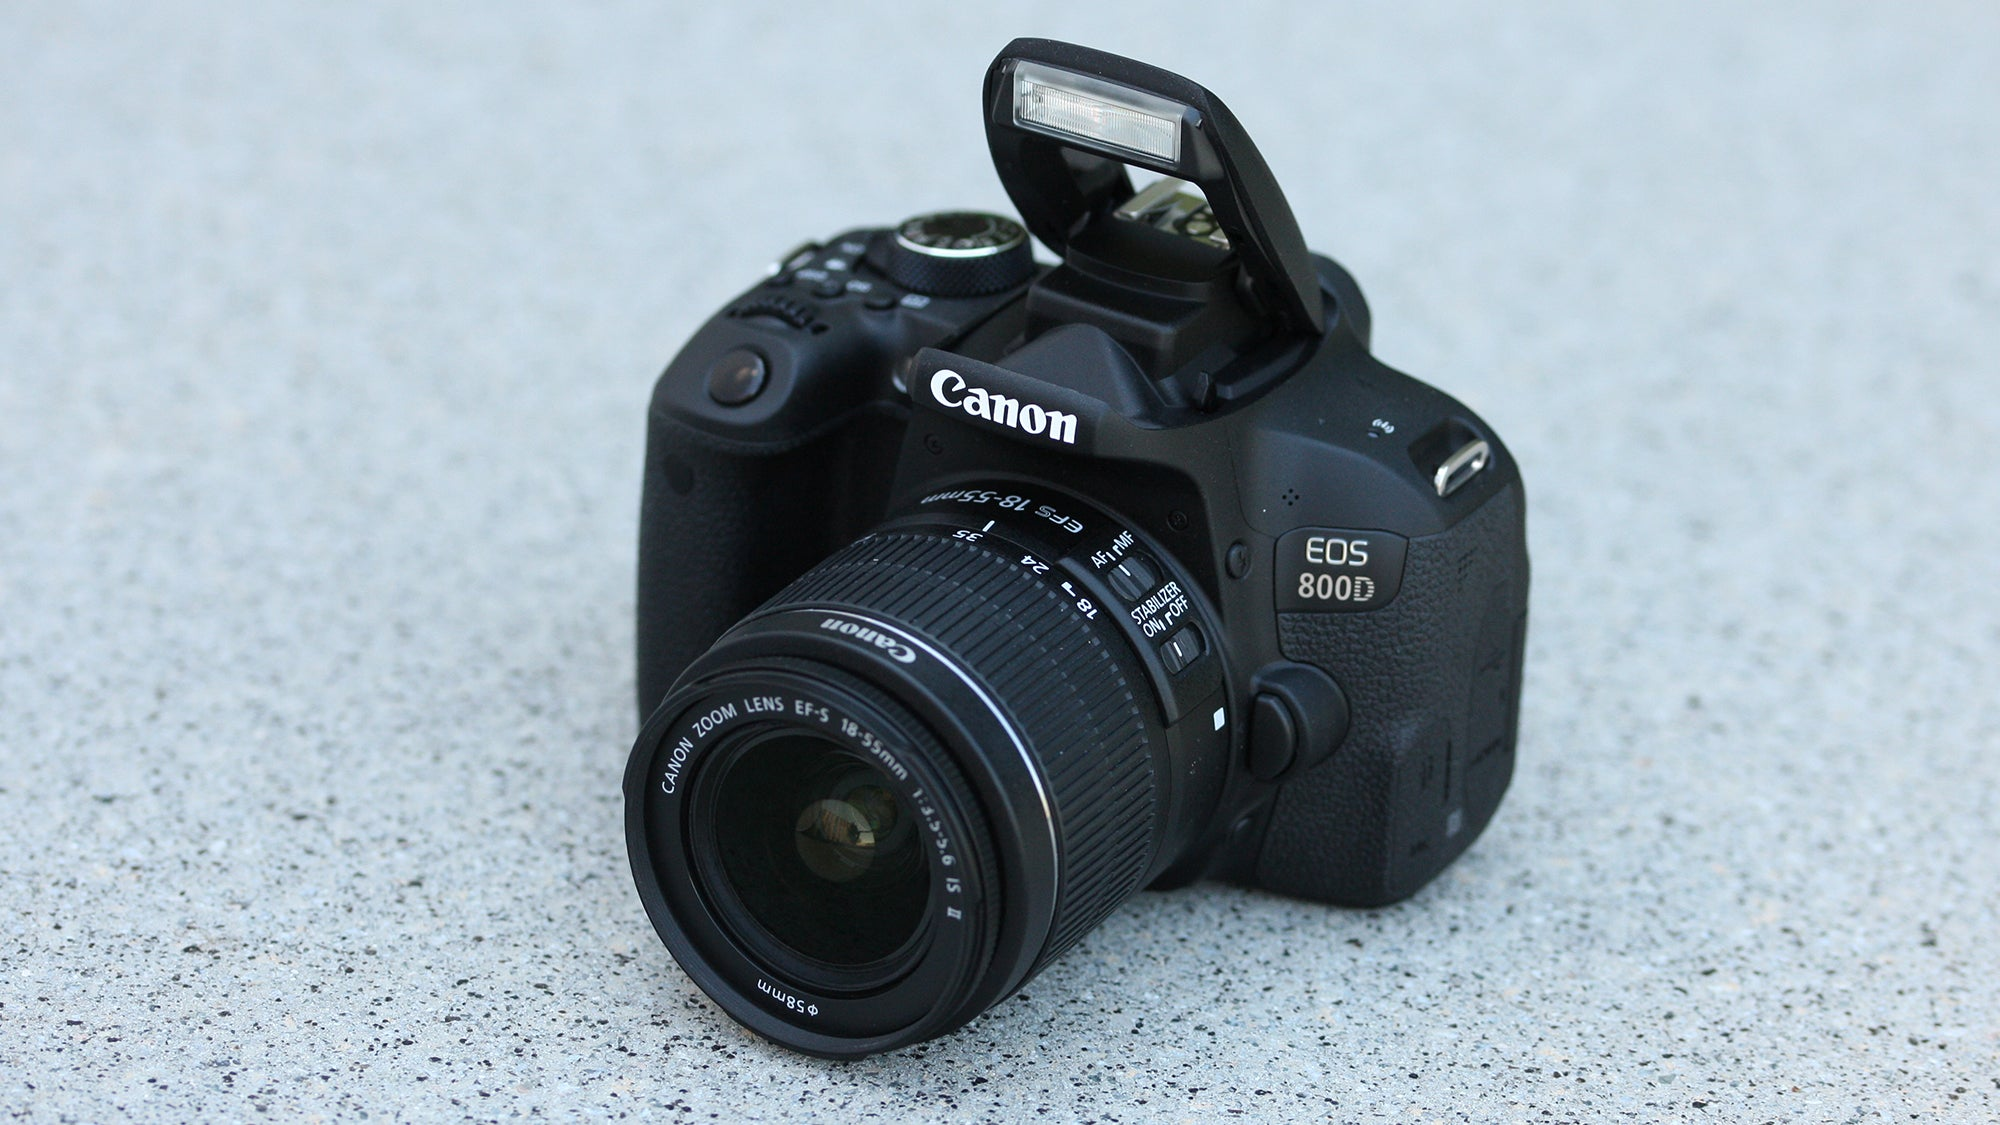 Canon Eos 800d Review Trusted Reviews Dslr 750d